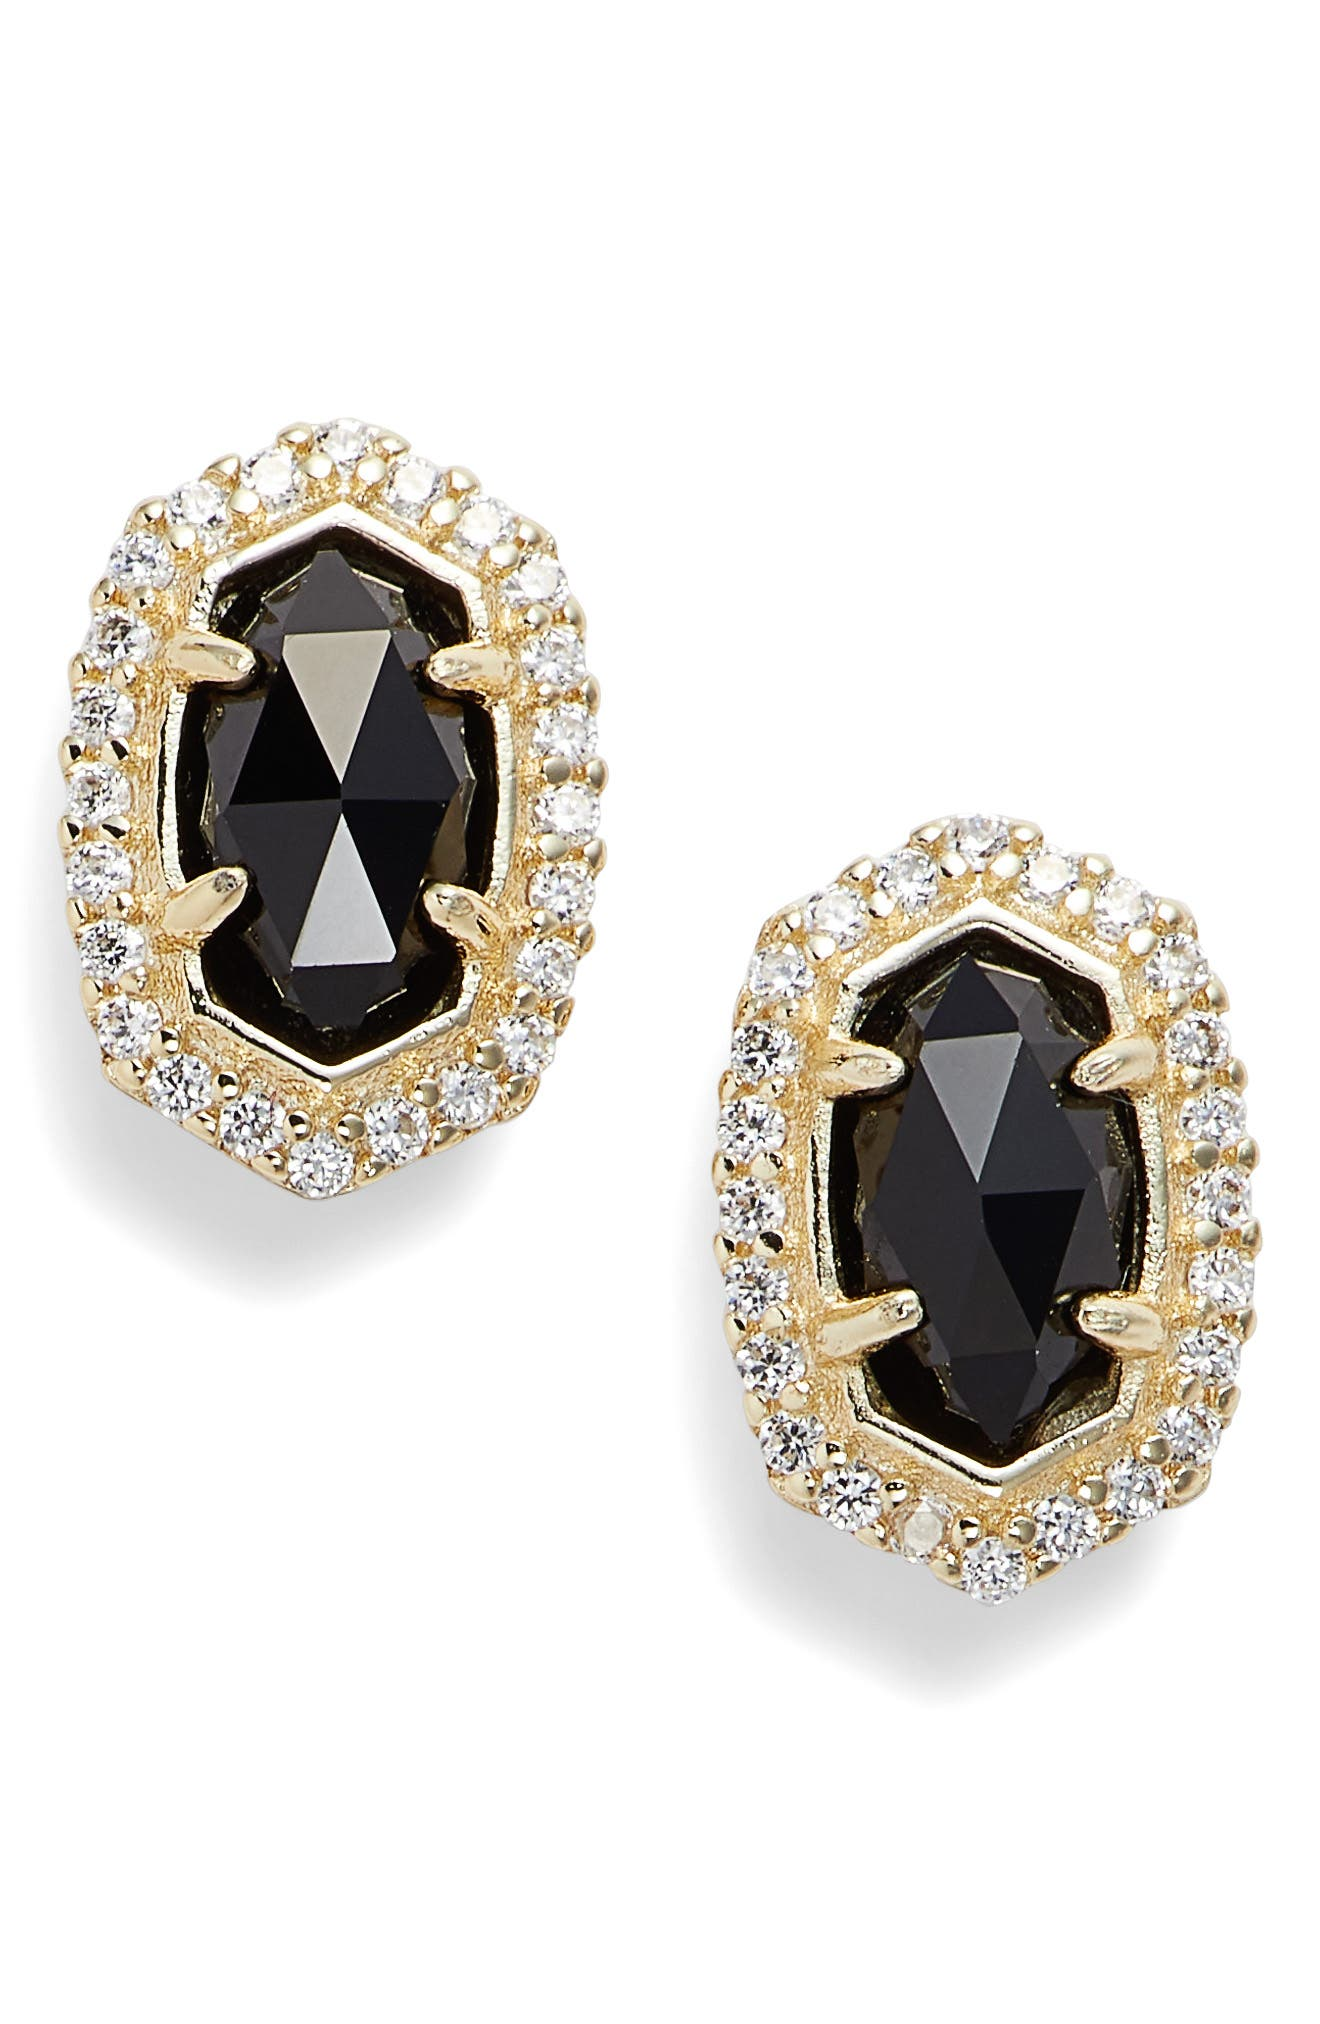 KENDRA SCOTT 'Cade' Drusy Stud Earrings, Main, color, BLACK/ GOLD